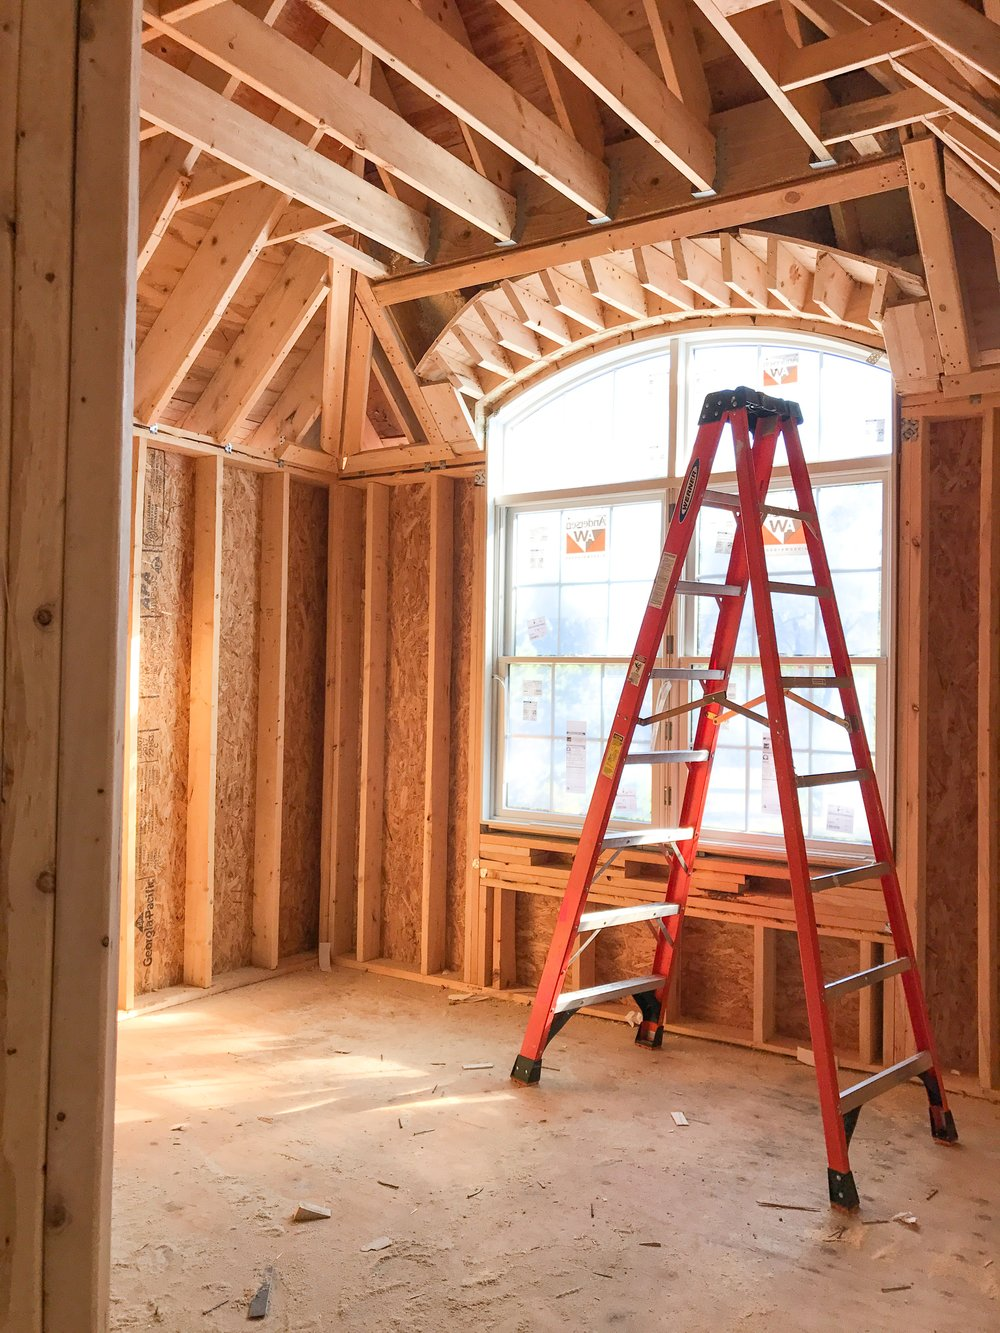 New Construction Rough Framing - Arched Window in French Provincial Country Style Home